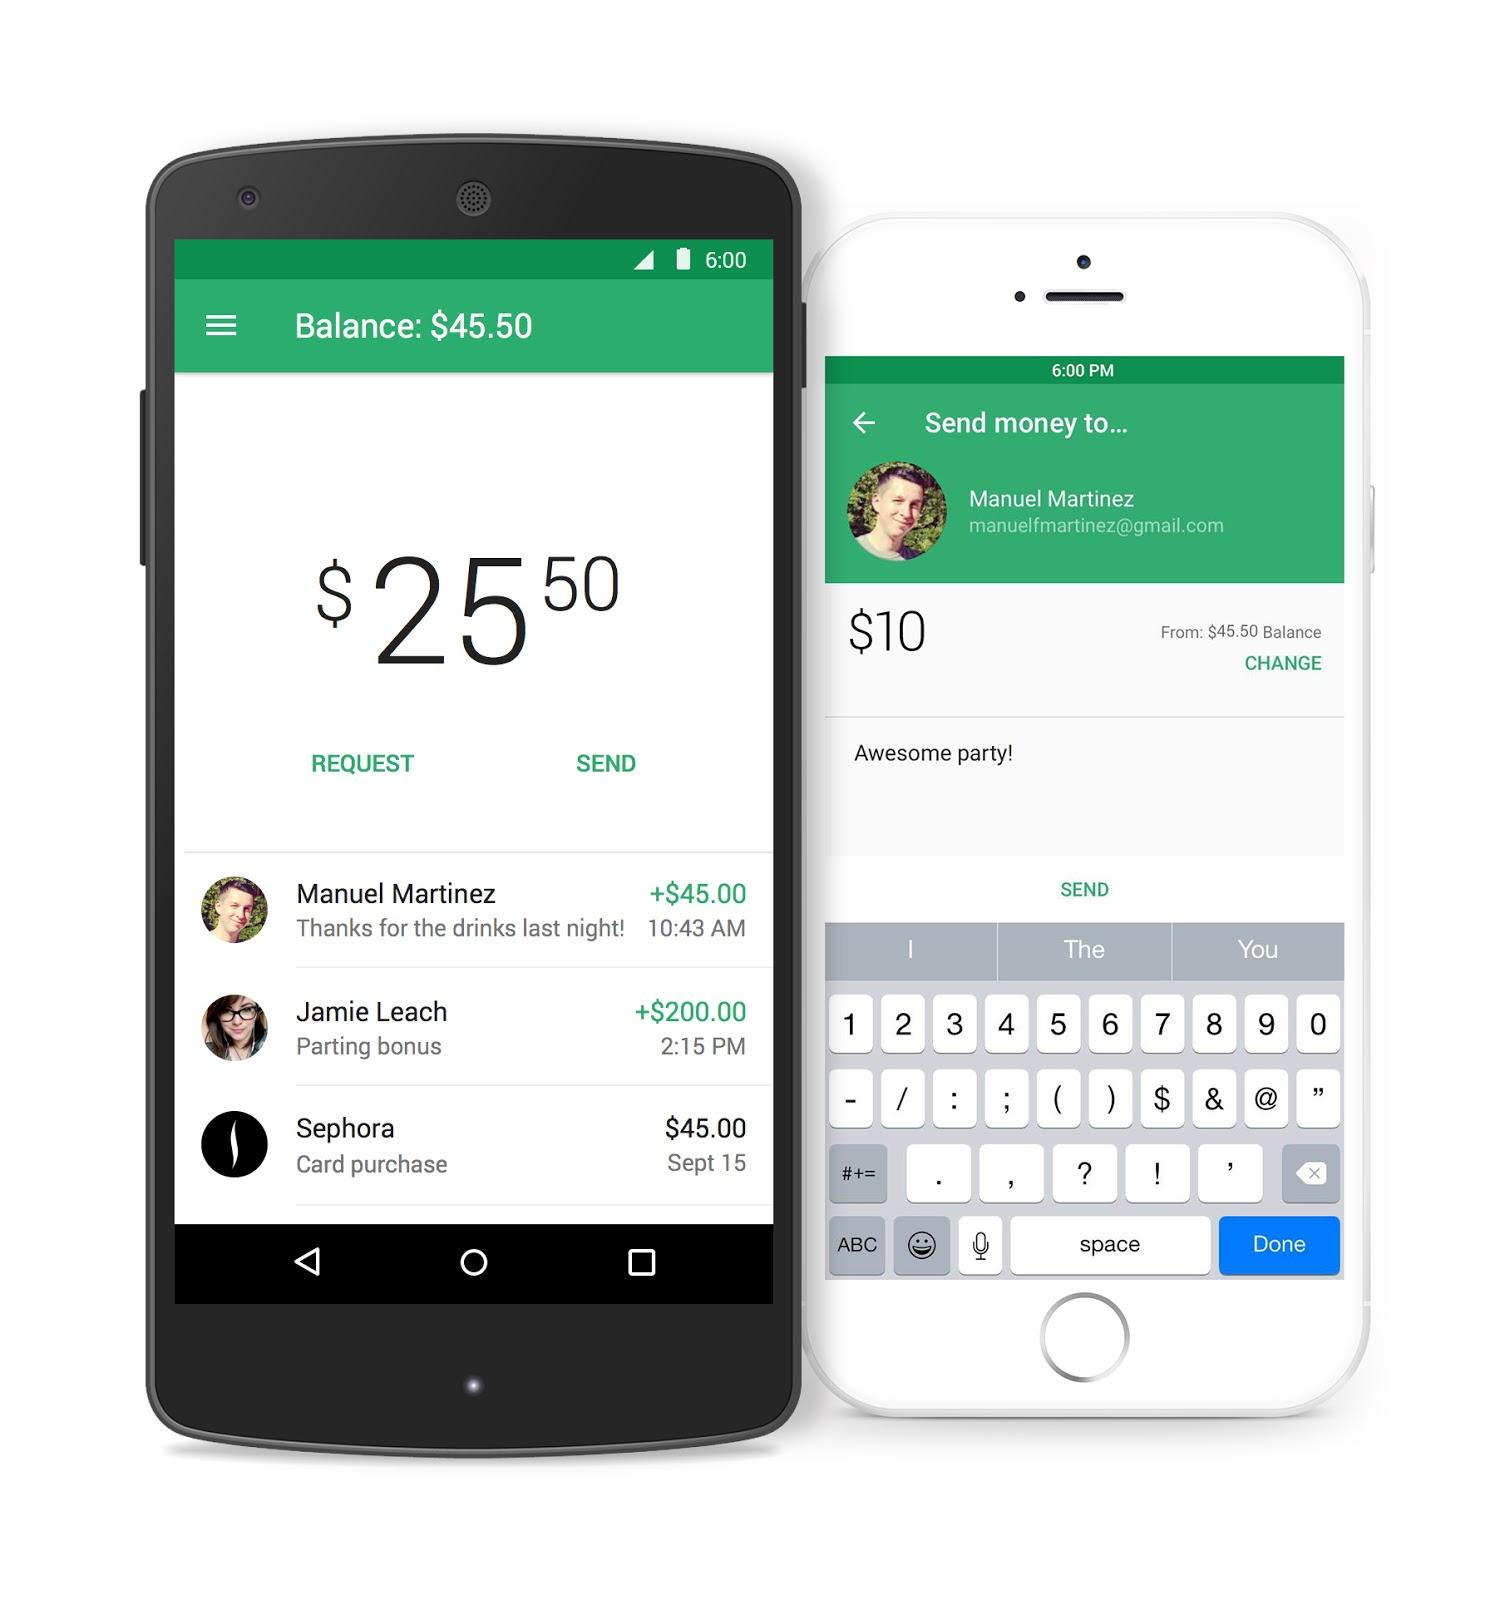 Android Pay launches today: here's how to get it - SlashGear